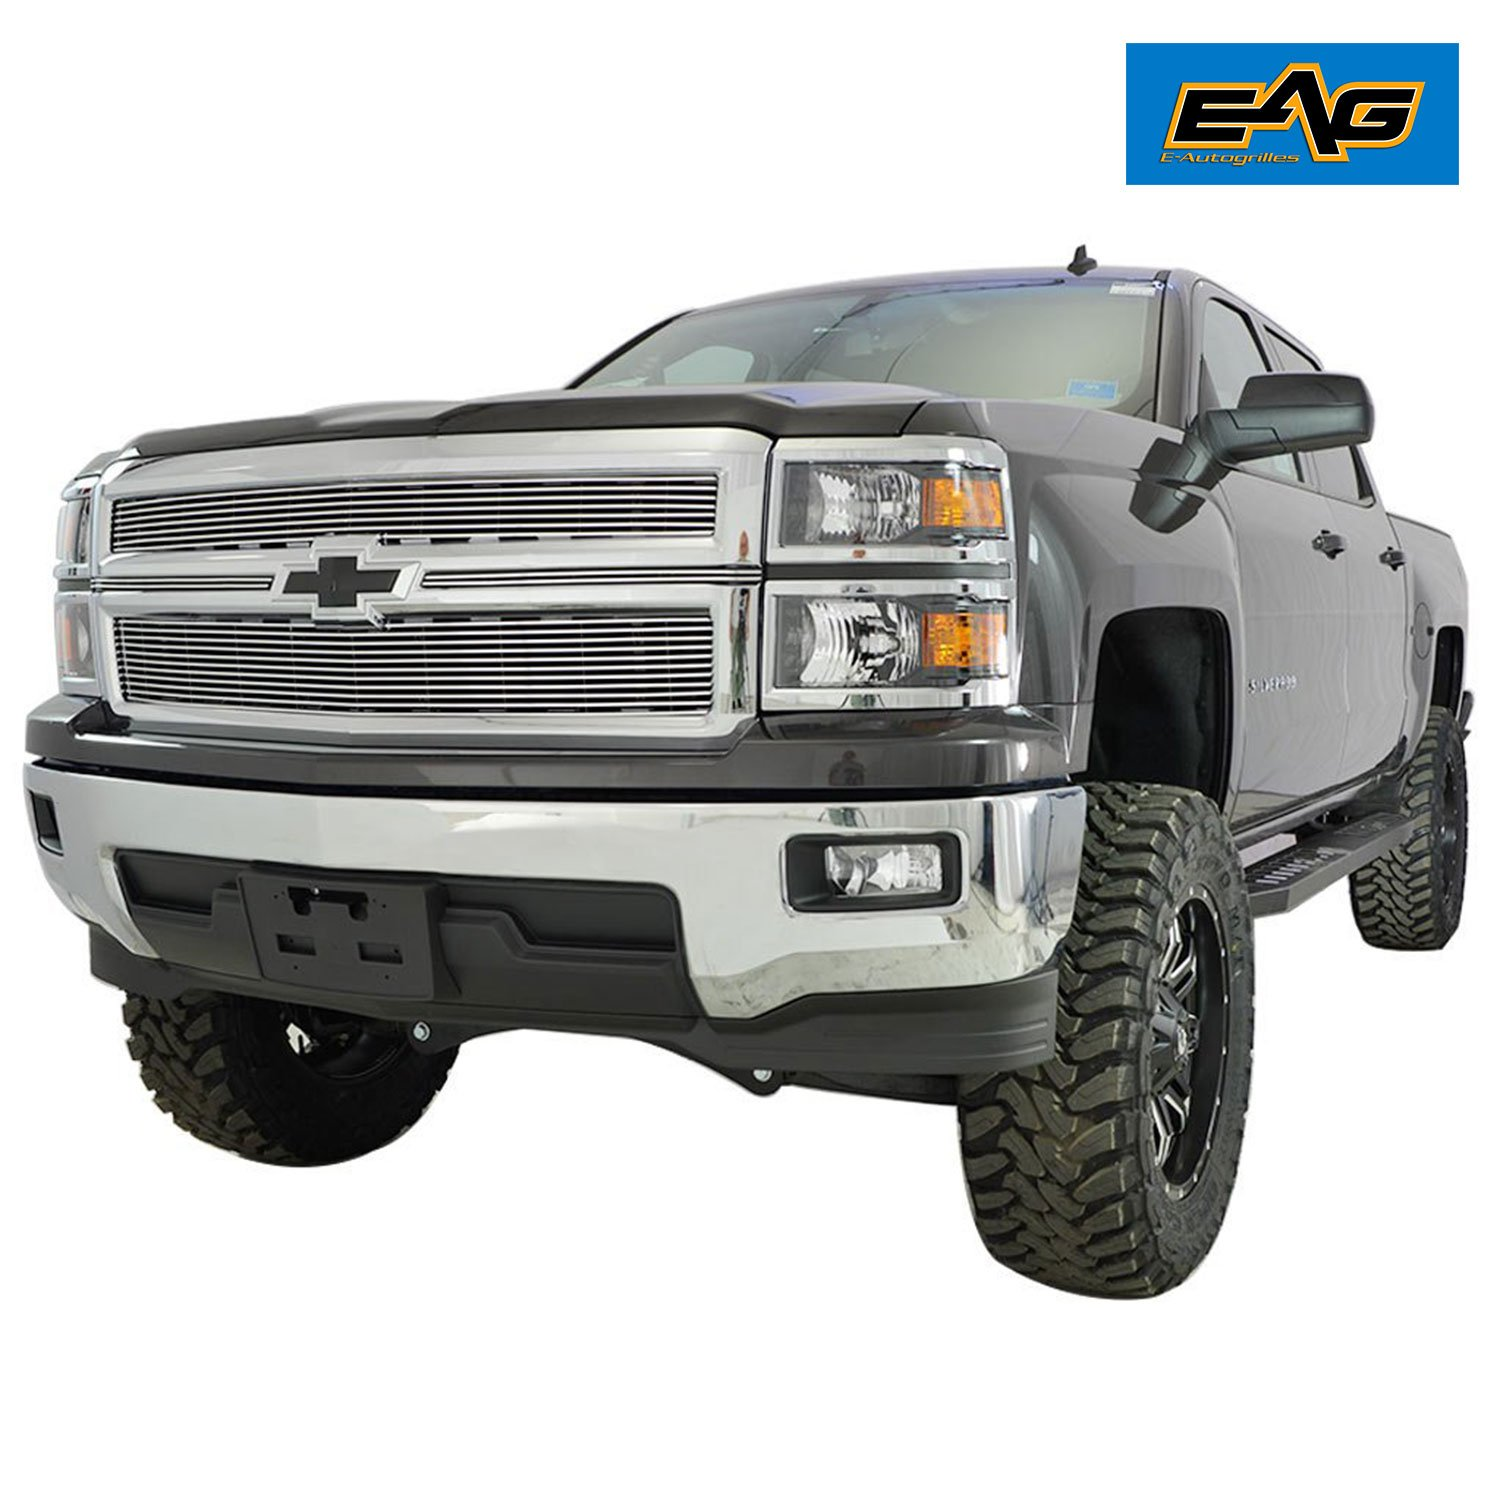 Eag Billet Front Grille Insert For 14 15 Chevrolet 1964 Chevy Truck Silverado 1500 Non Z 71 Automotive